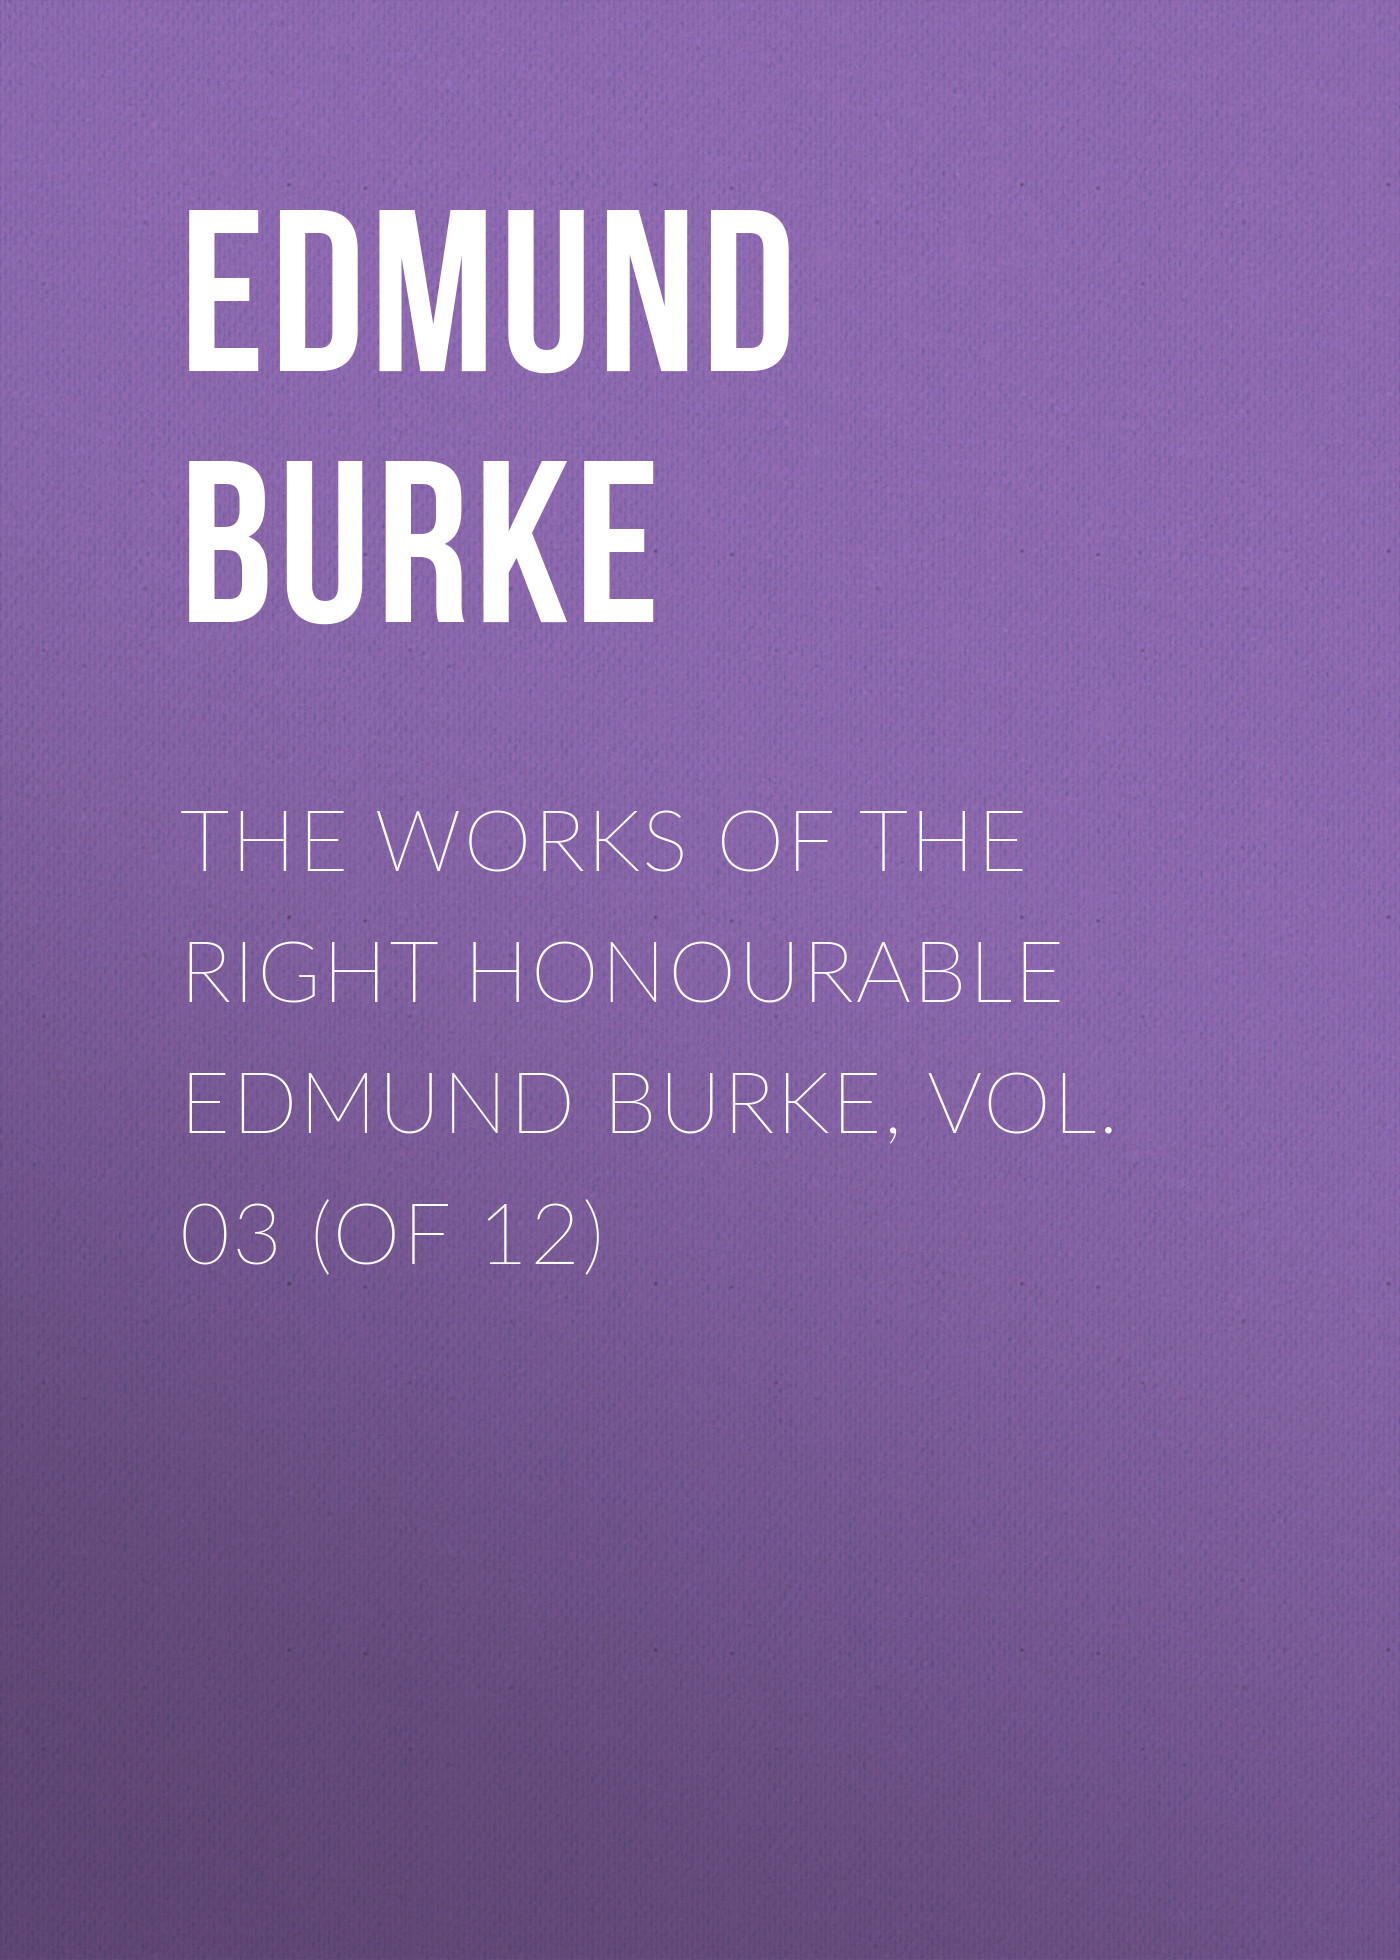 Edmund Burke The Works of the Right Honourable Edmund Burke, Vol. 03 (of 12) edmund burke the works of the right honourable edmund burke vol 12 of 12